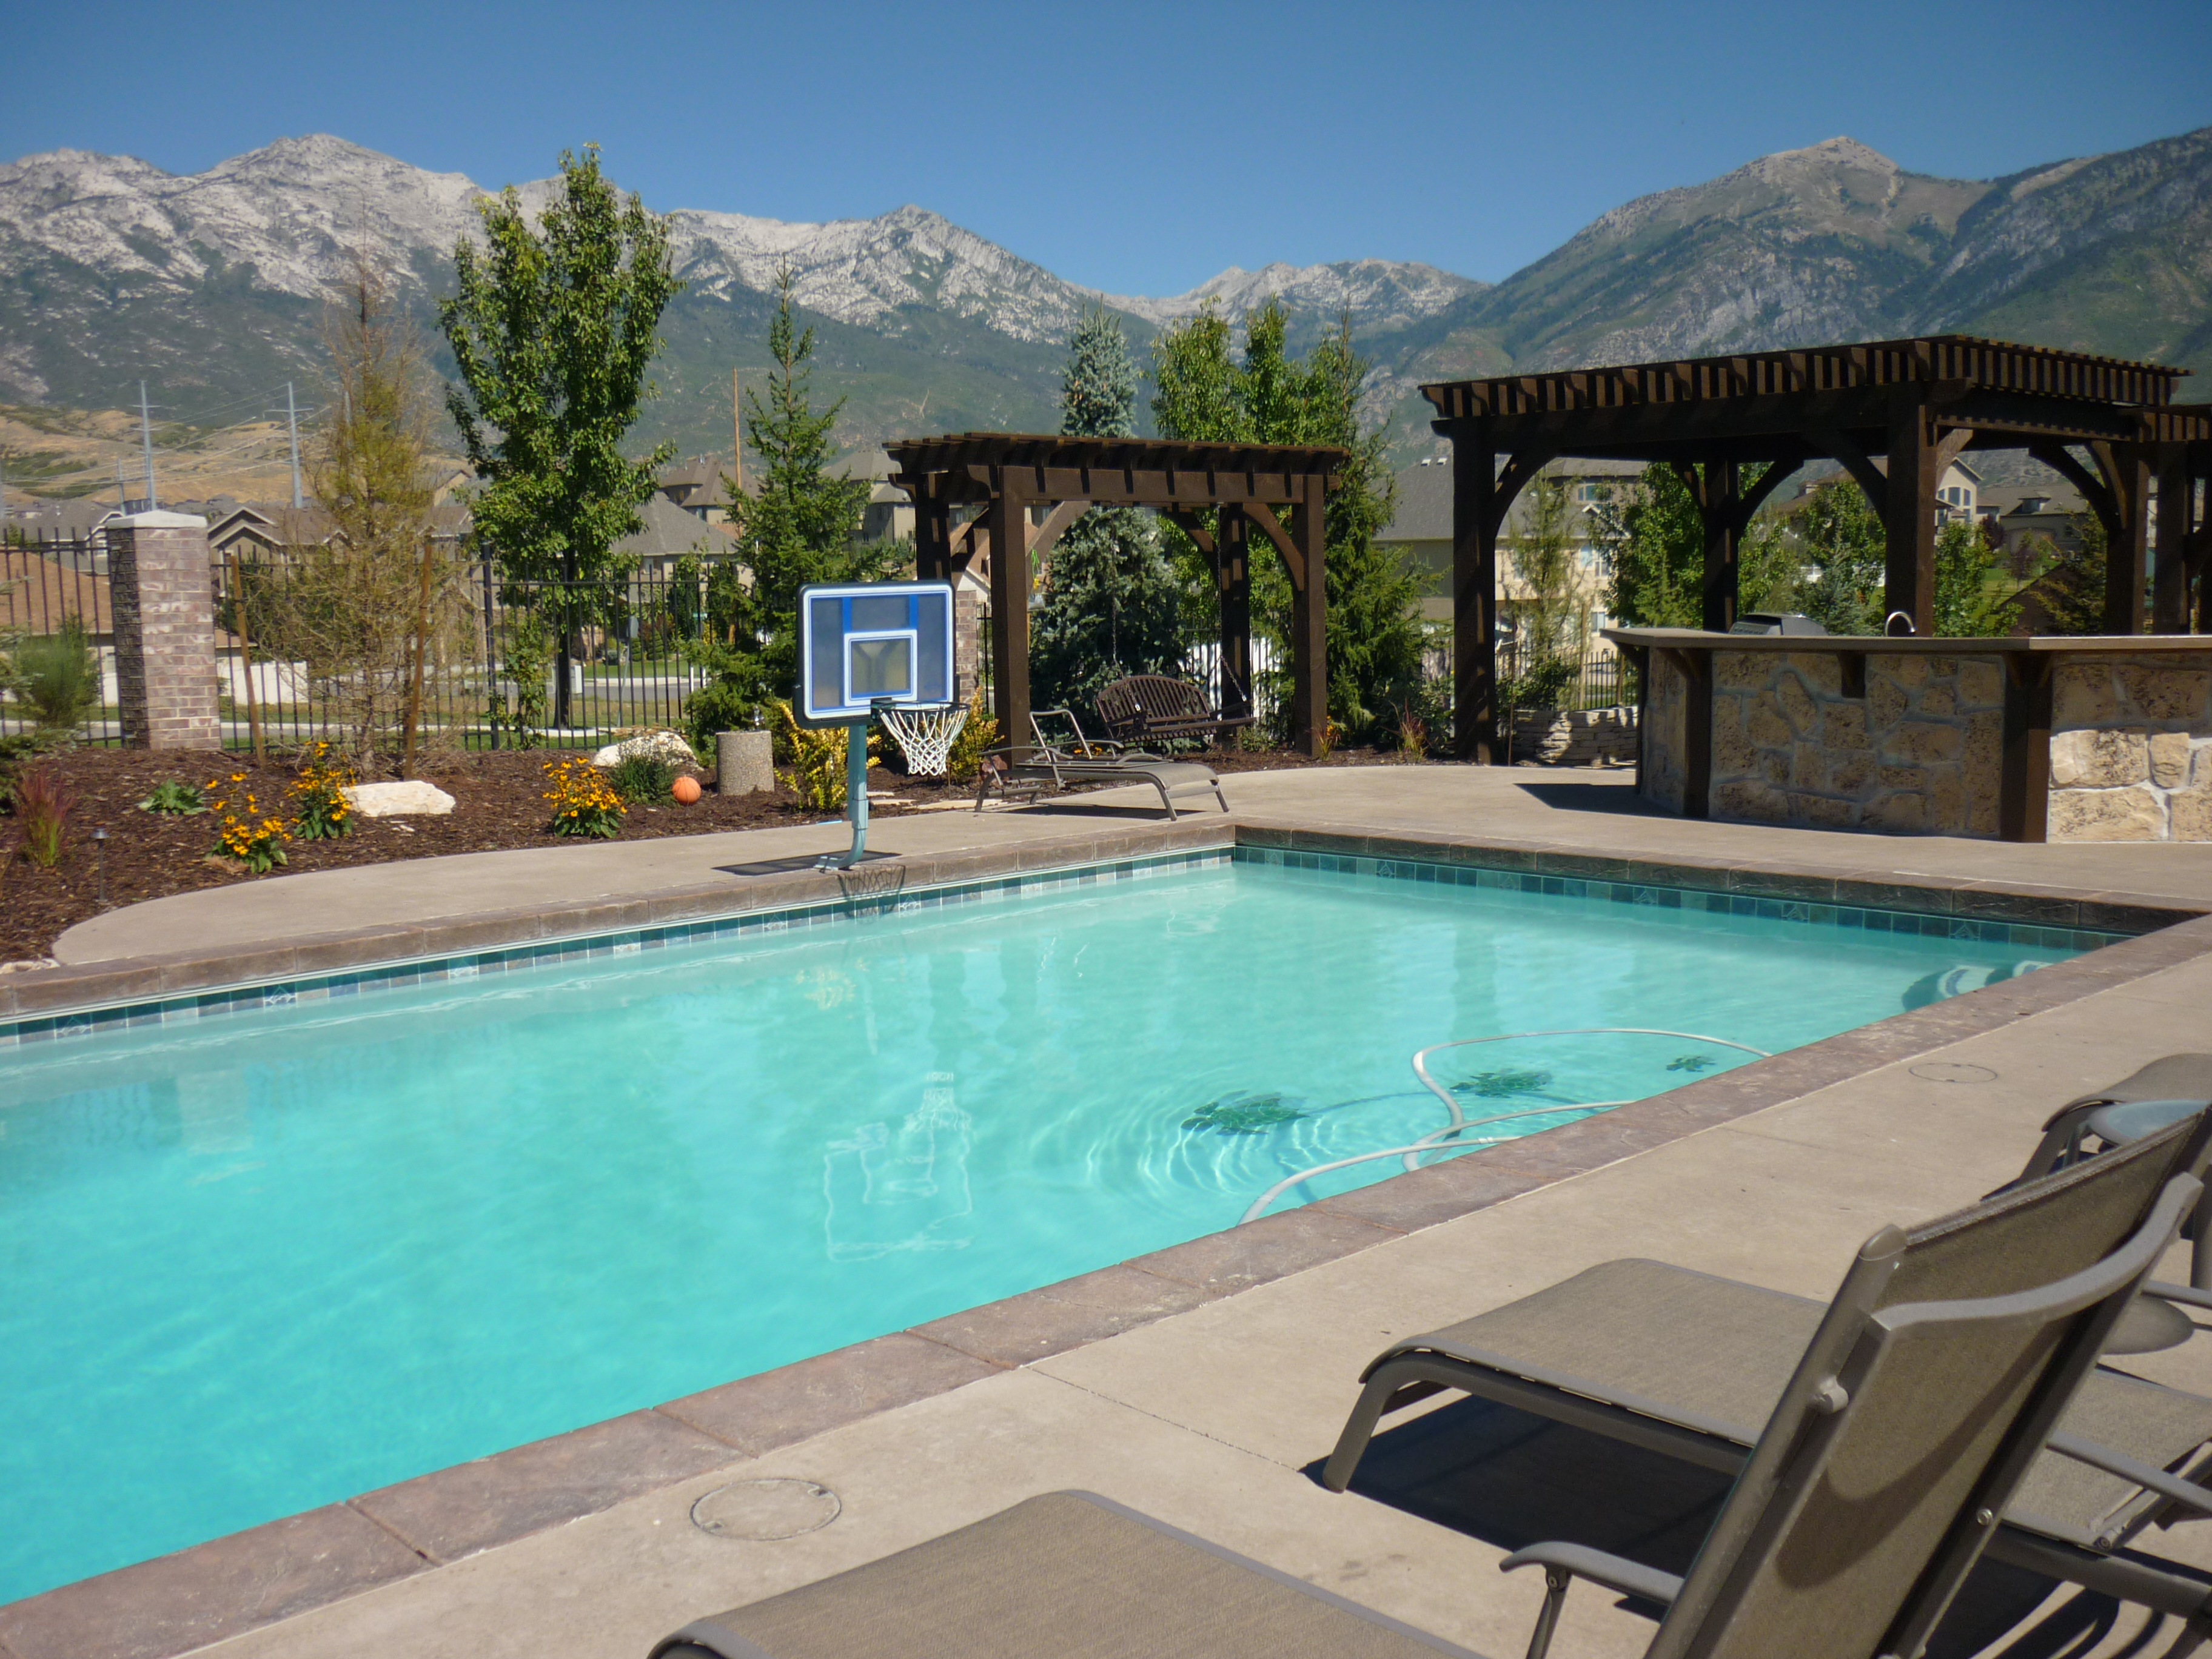 Utah Gunite Pools And Slide Companies In Utah Chris Jensen Landscaping In Salt Lake City And